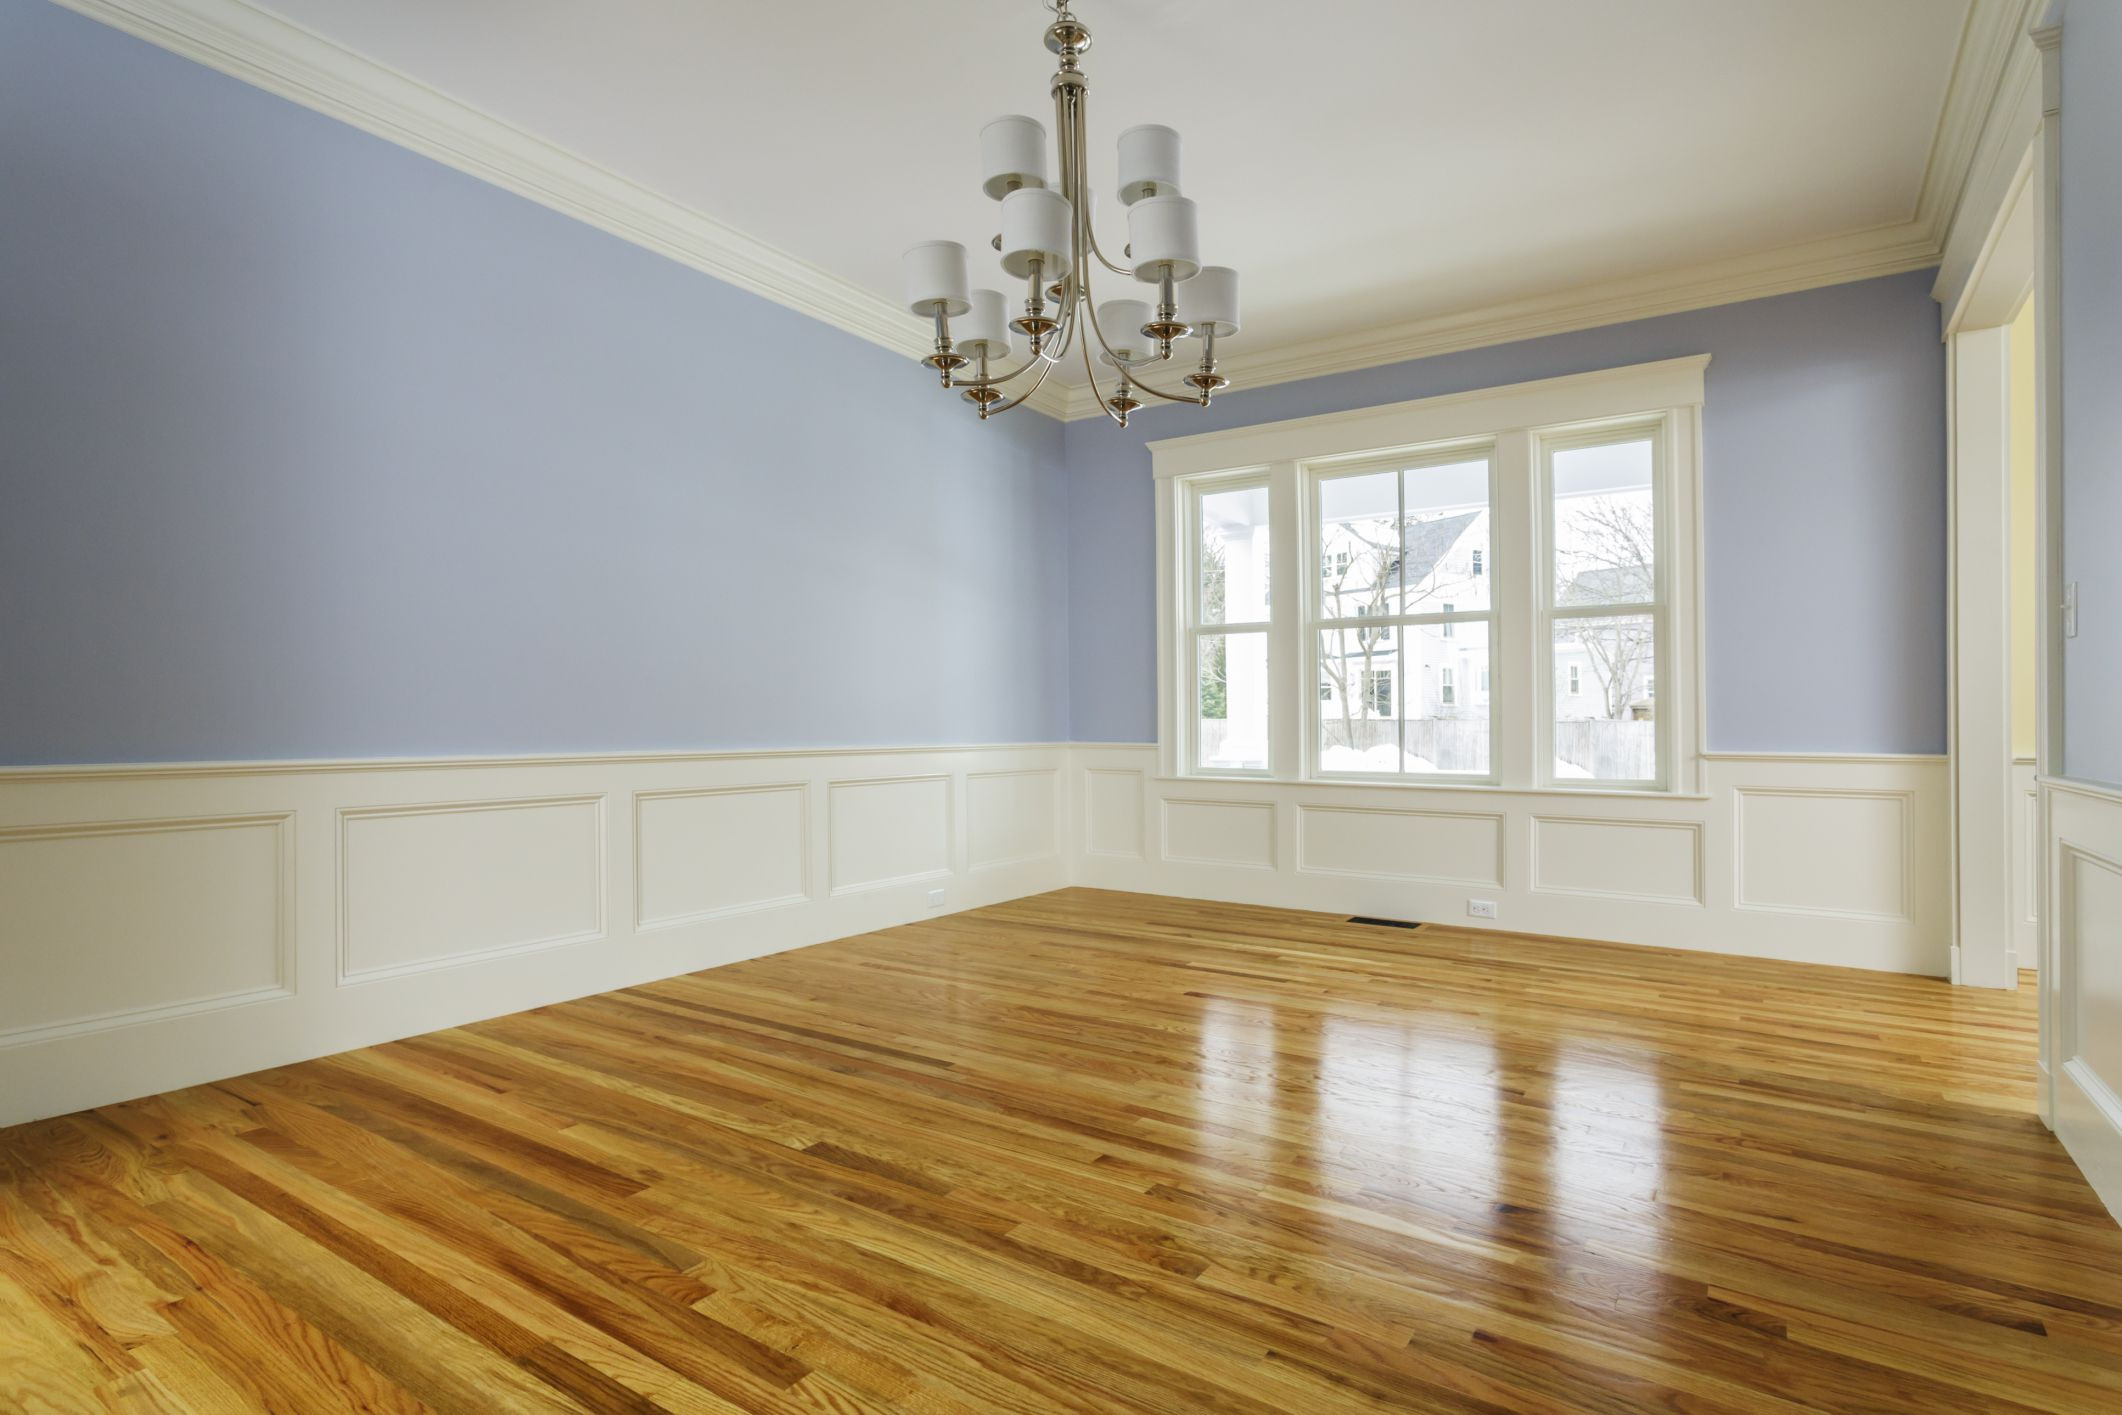 hardwood flooring installation cost per square foot of the cost to refinish hardwood floors with 168686572 highres 56a2fd773df78cf7727b6cb3